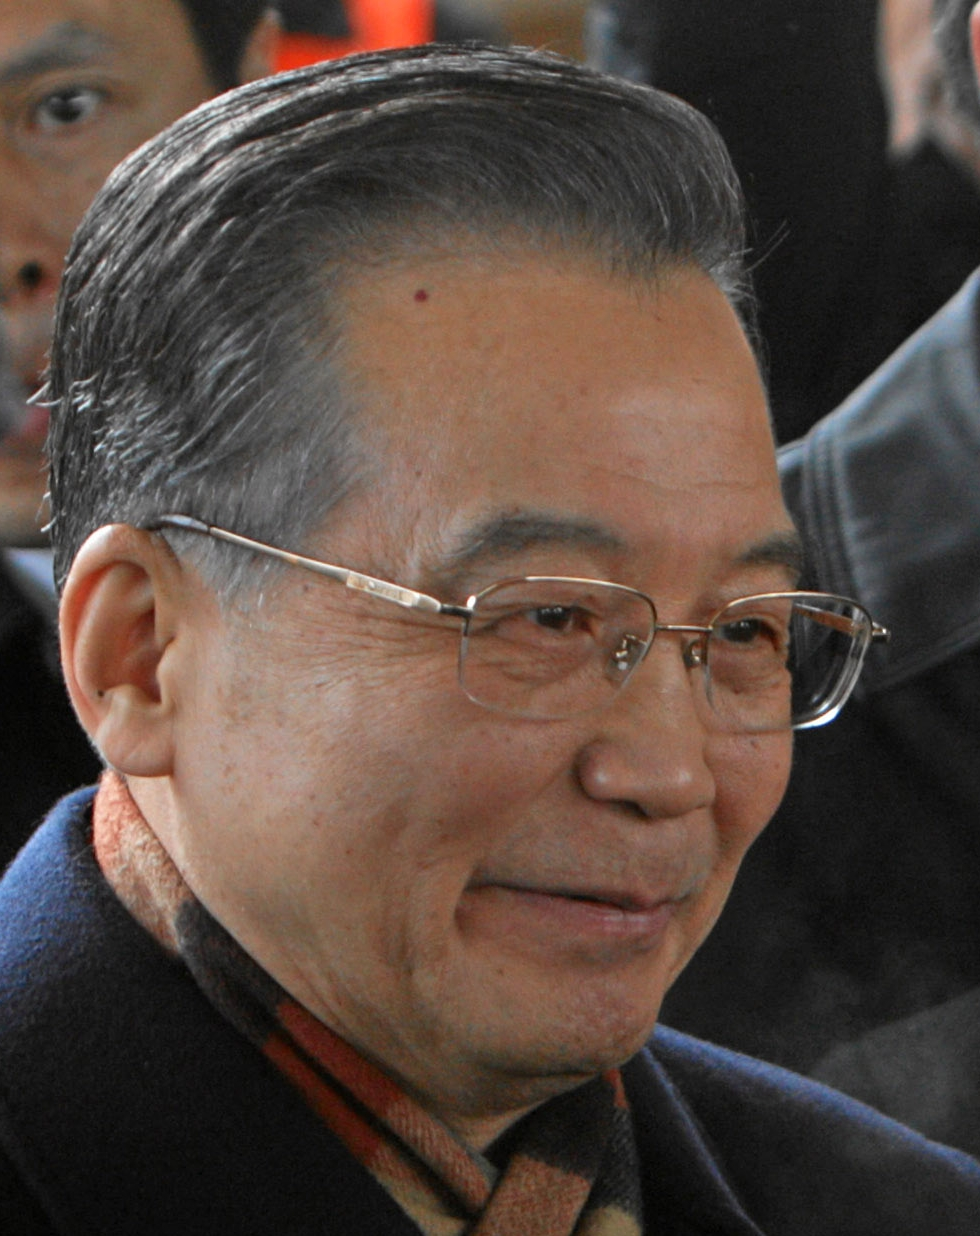 Wen Jiabao - Image courtesy of Wikipedia